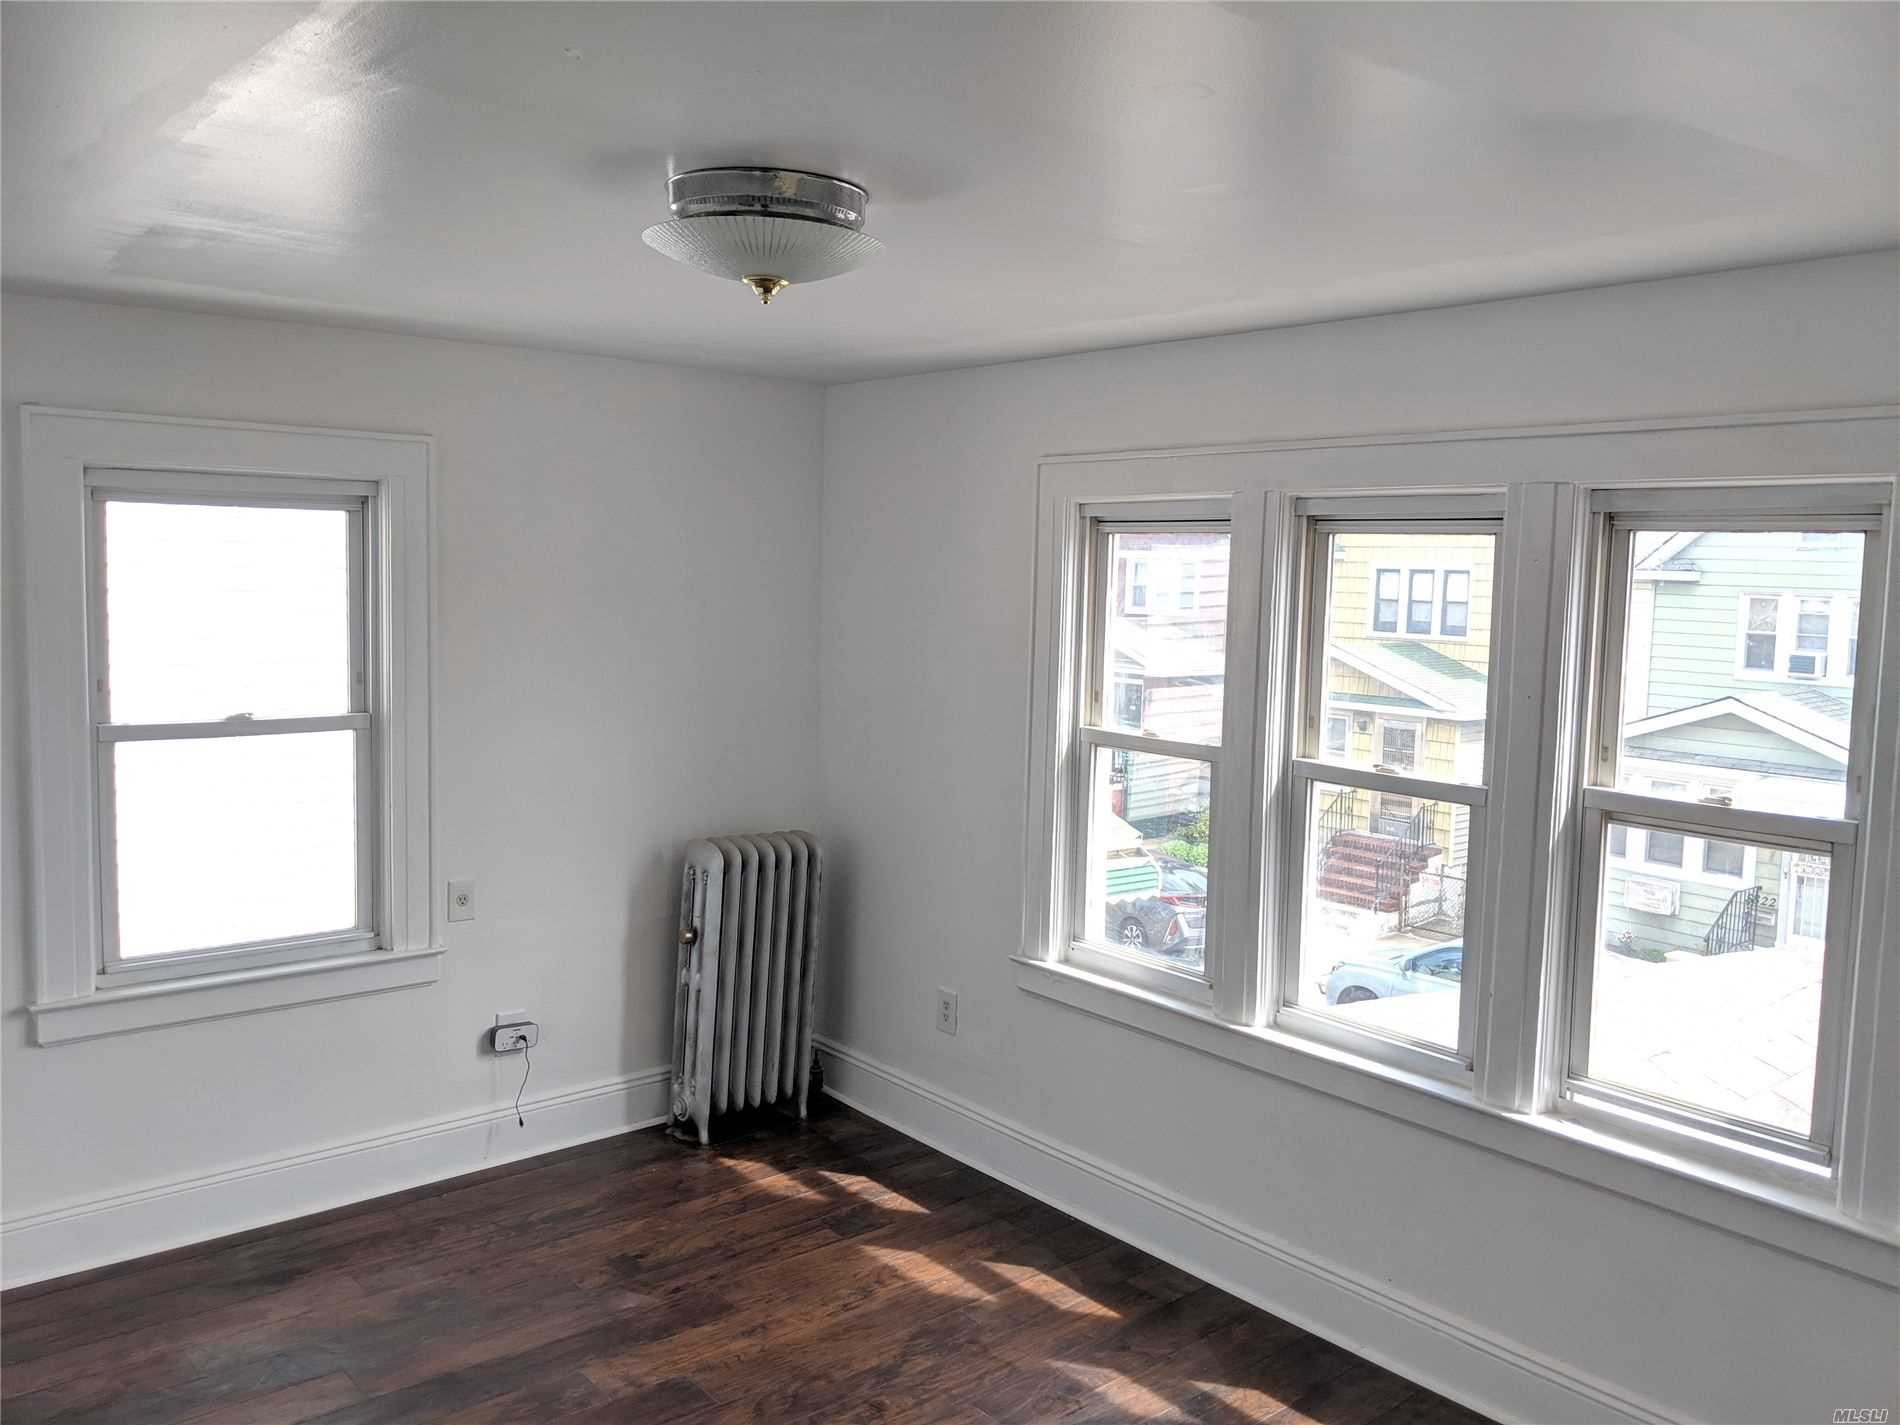 Excellent opportunity in this Woodside section, newly renovated kitchen and bathroom. Ample & bright. Close to 61st Street train station, great neighborhood with access to many & diverse establishments. Close to Queens Blvd as well.